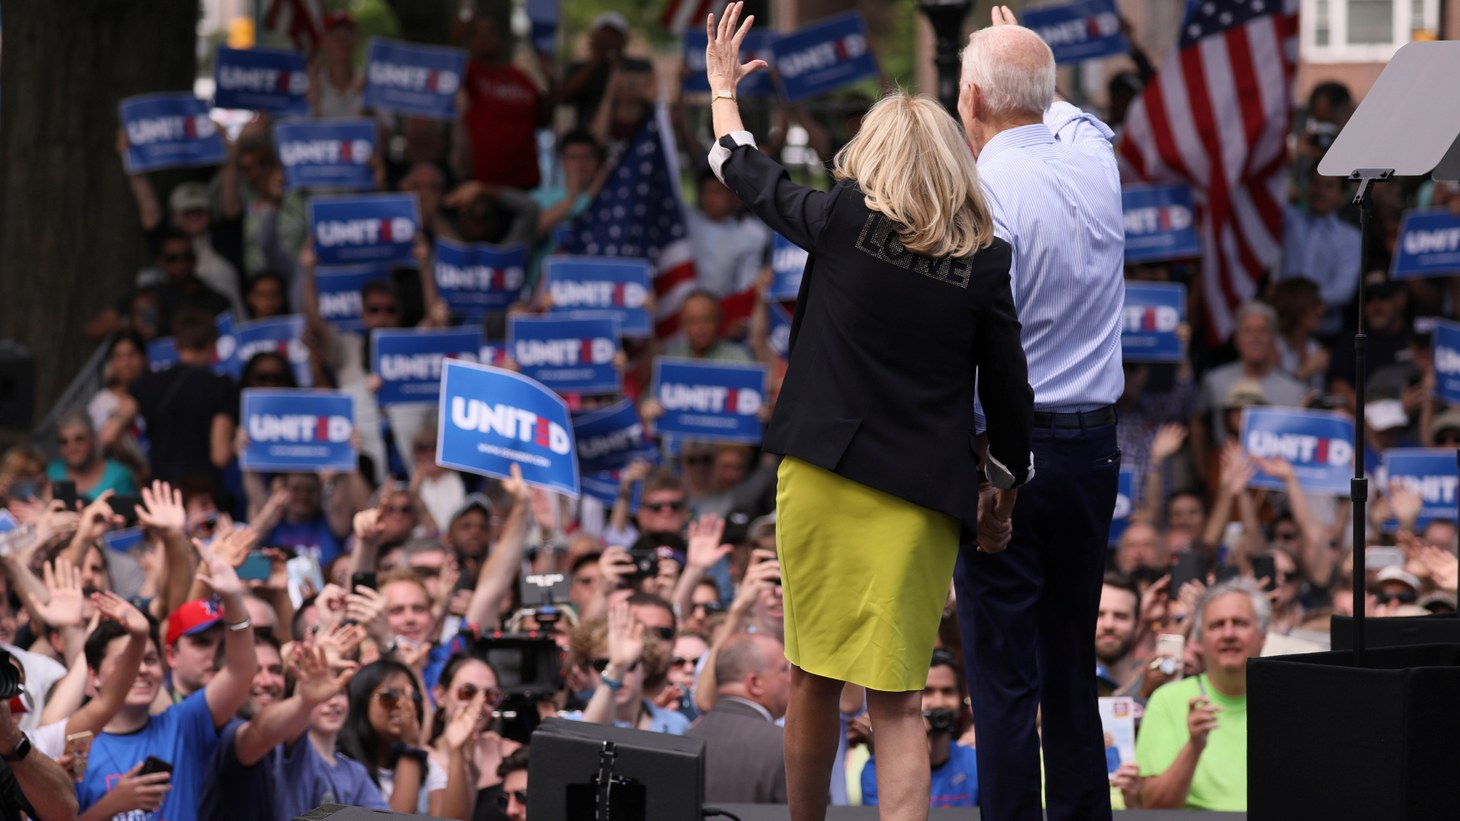 Joe Biden and his wife Jill Biden wave to the crowd at the end of his campaign rally in Philadelphia, Pennsylvania, U.S. May 18, 2019.